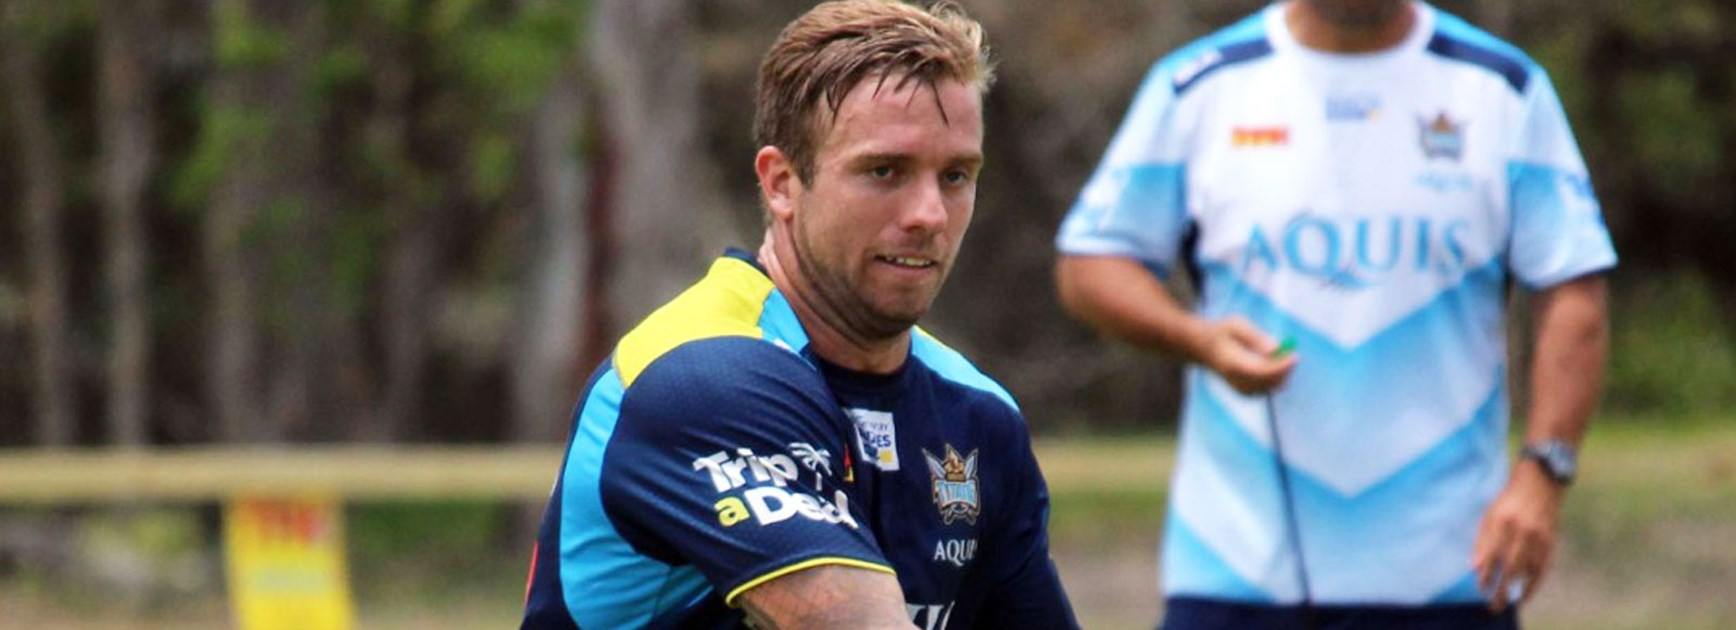 Titans playmaker Kane Elgey in pre-season training.